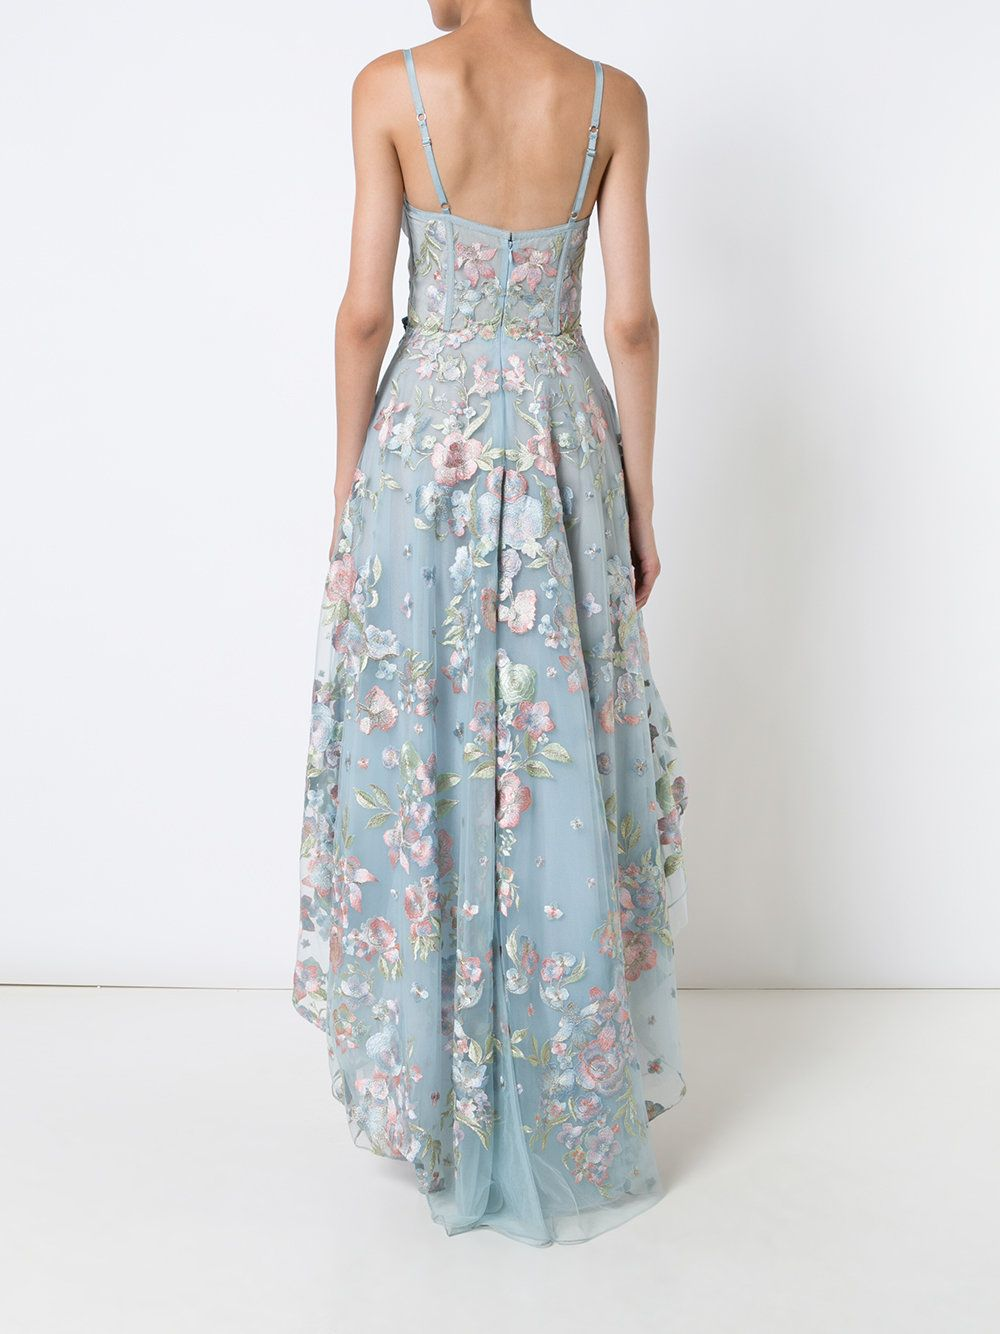 Marchesa Notte Floral Embroidered High-low Dress | Marchesa, High ...